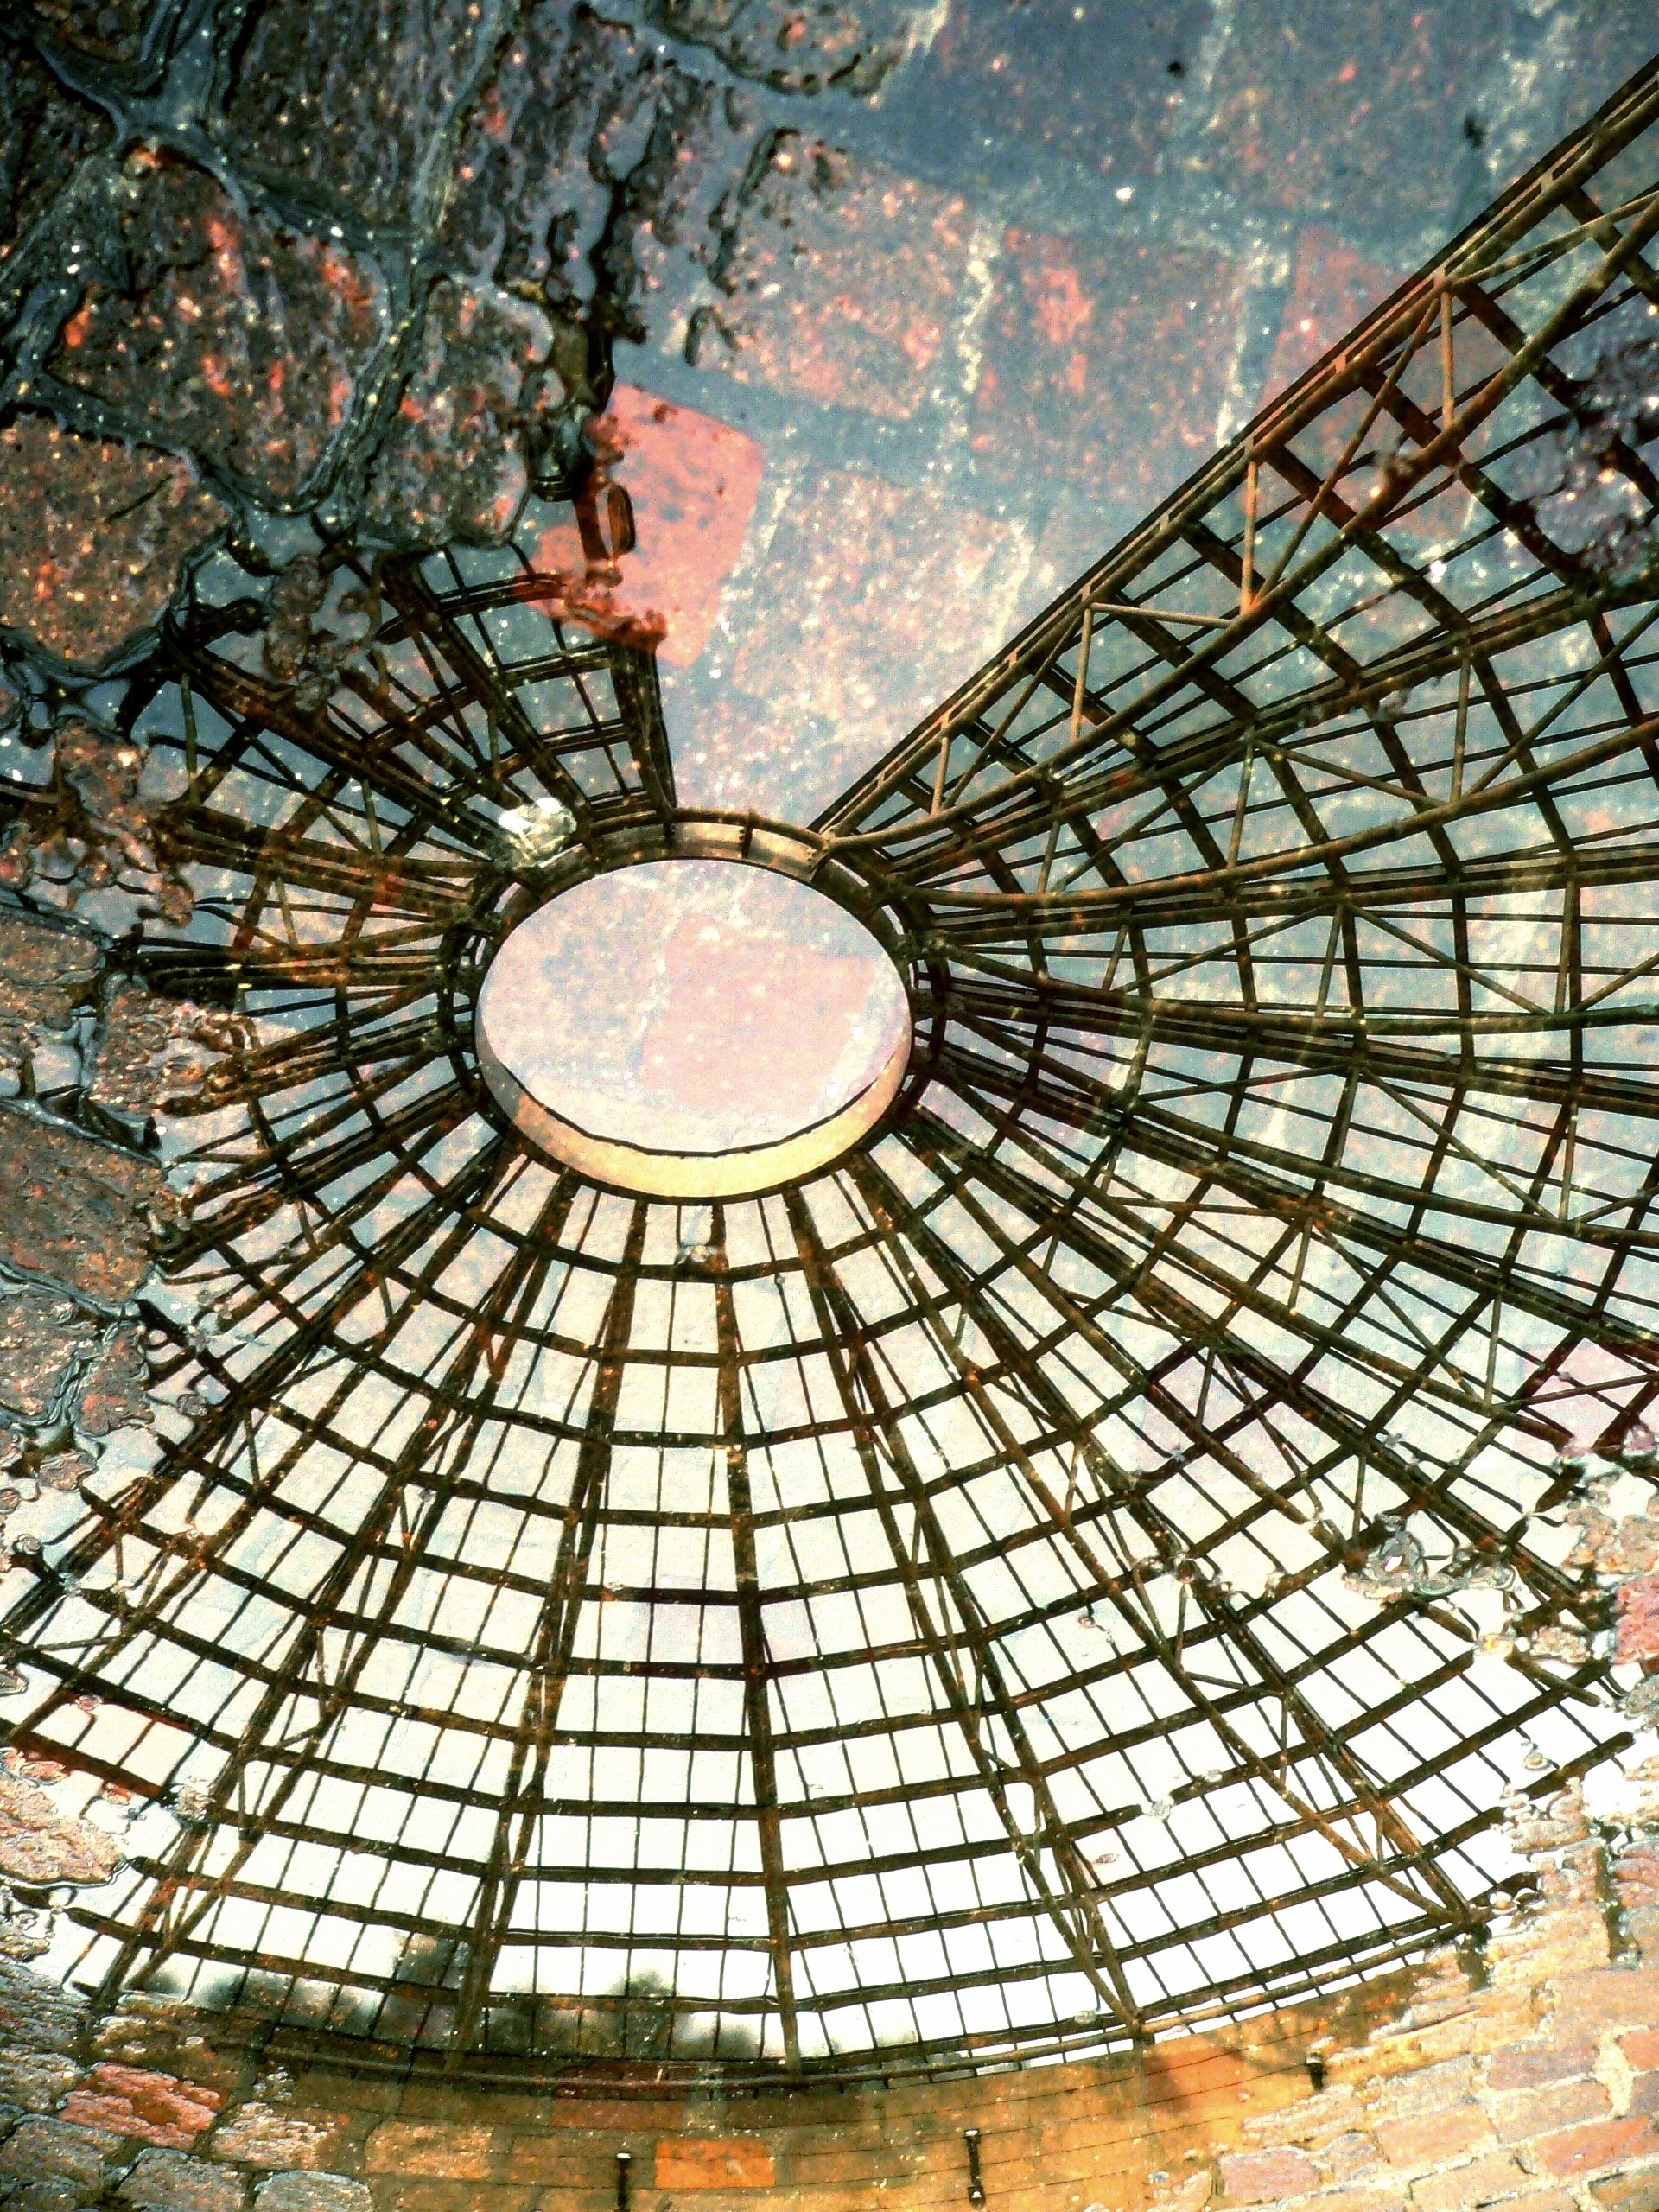 The reflected Dome of the Mart Musem at Rovereto, Italy